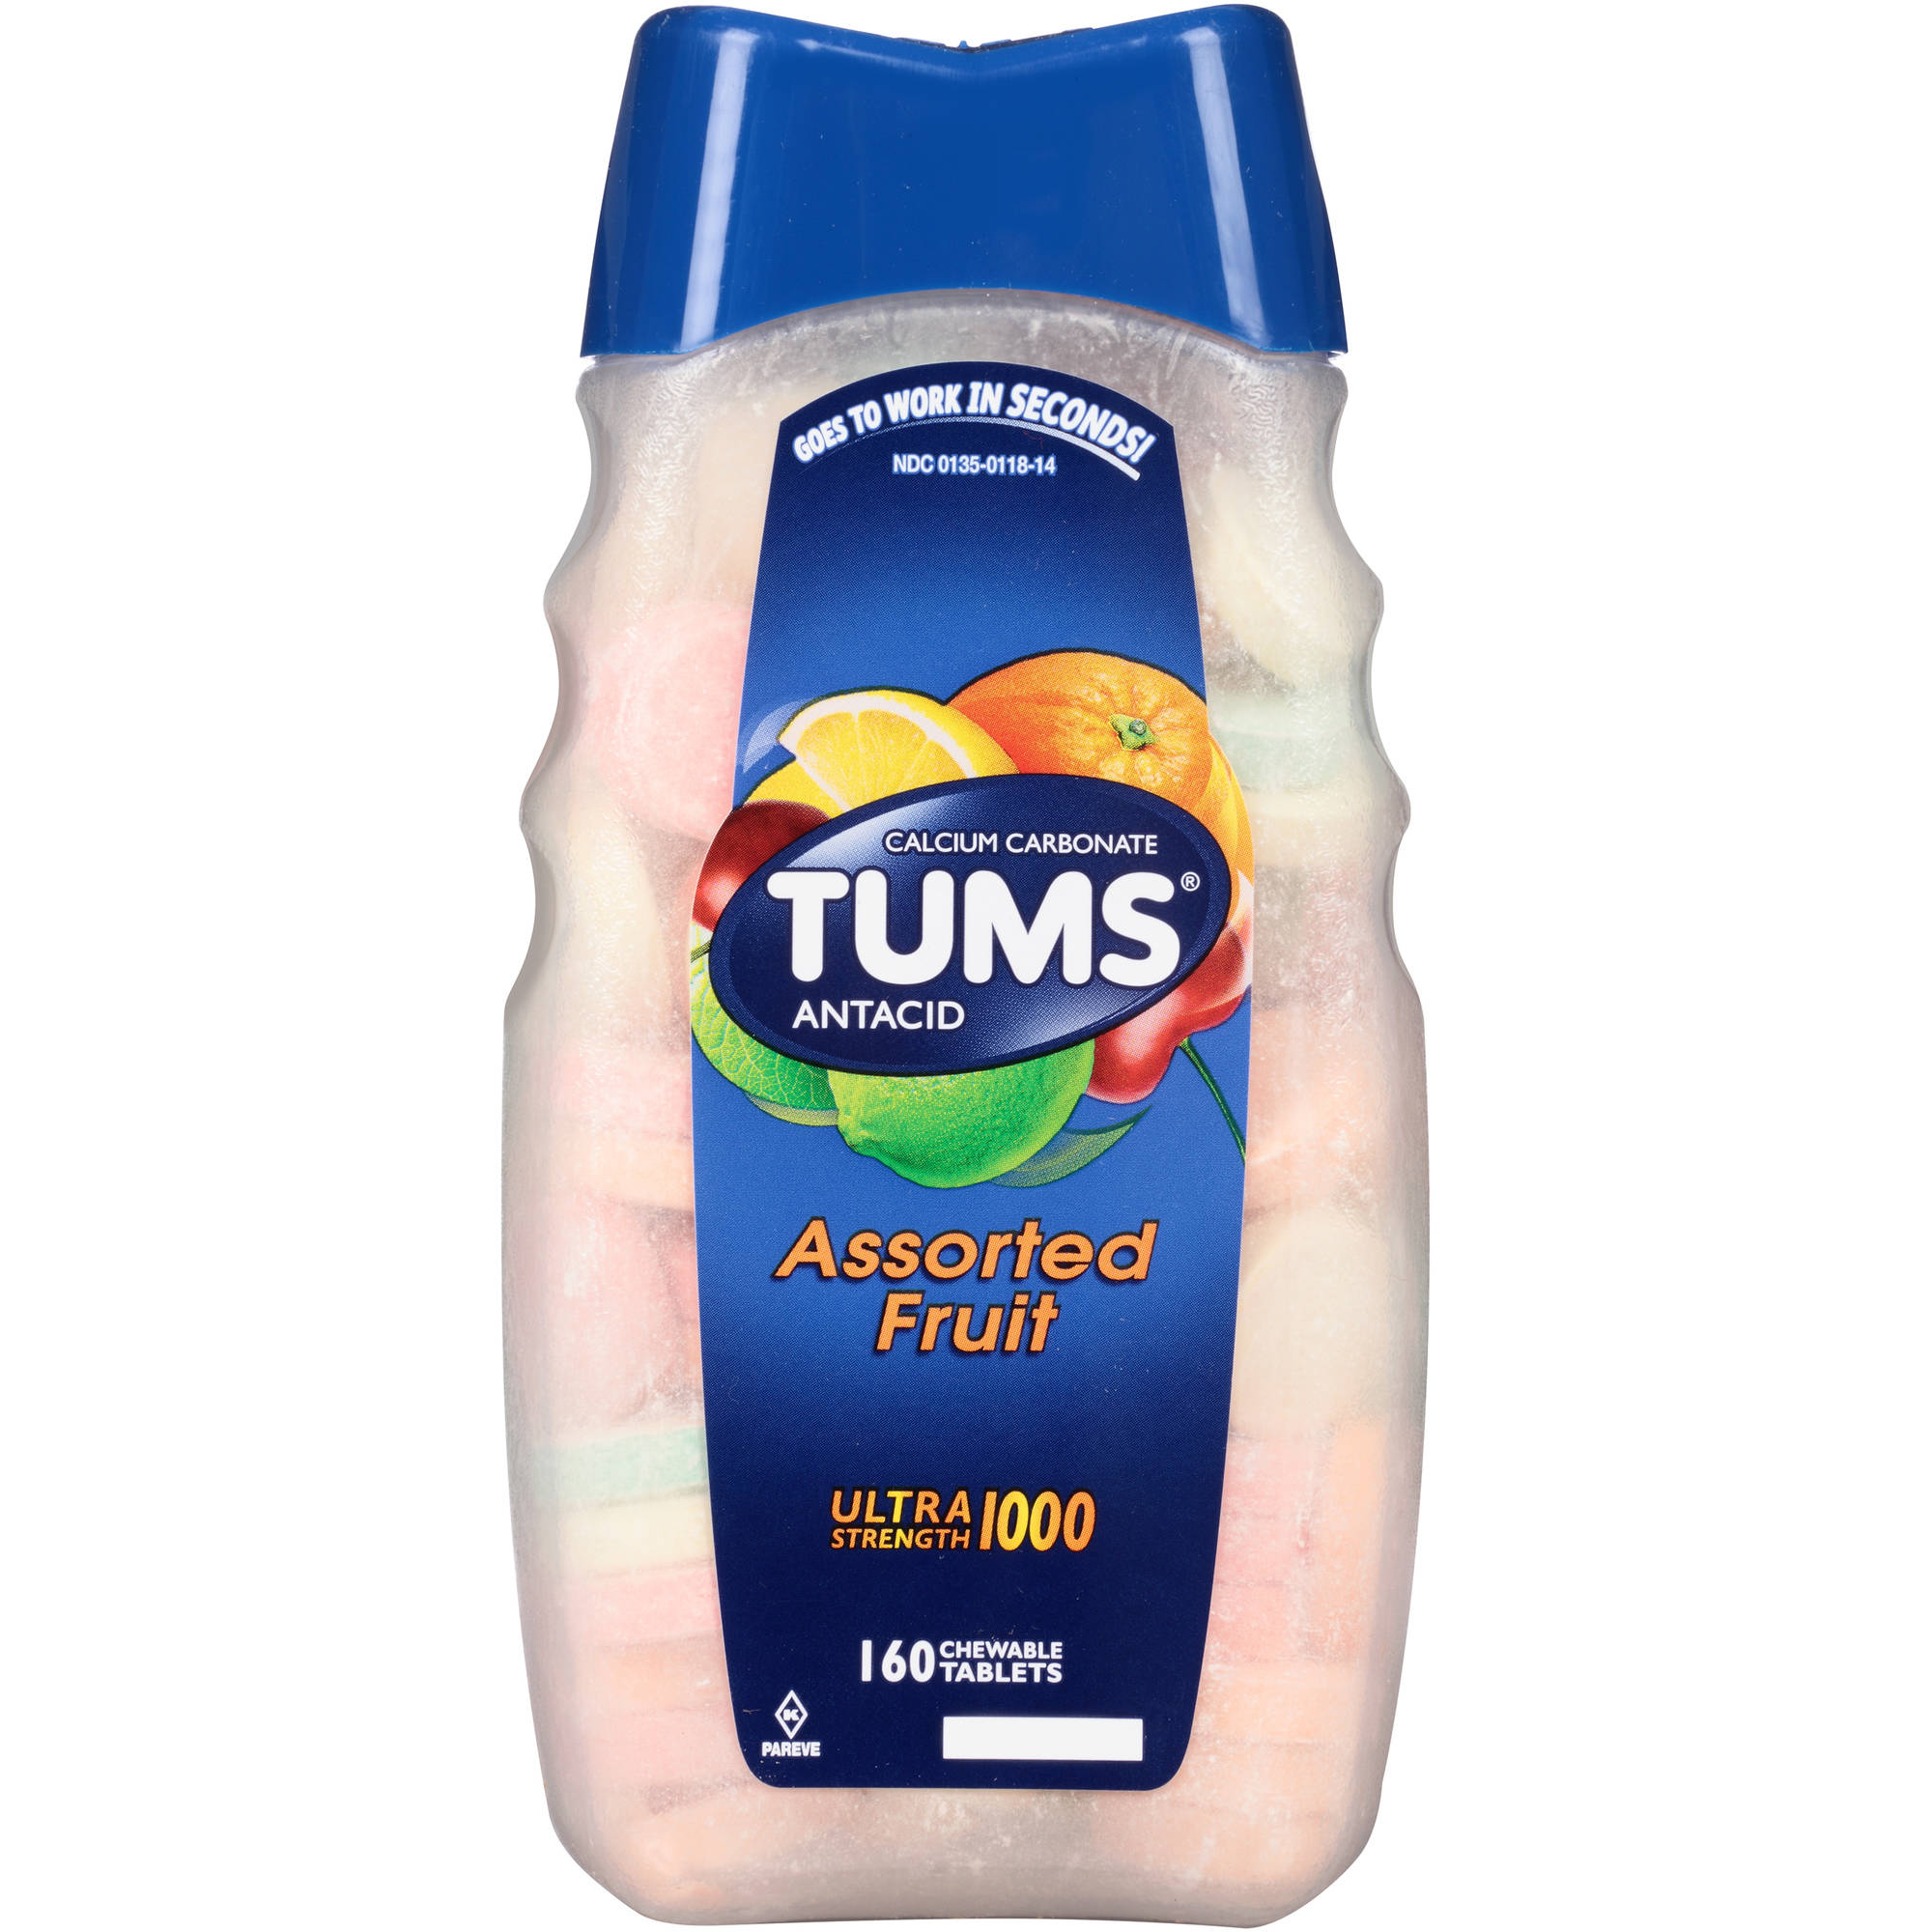 TUMS Antacid Ultra Strength 1000 Assorted Fruit Chewable Tablets, 160 count